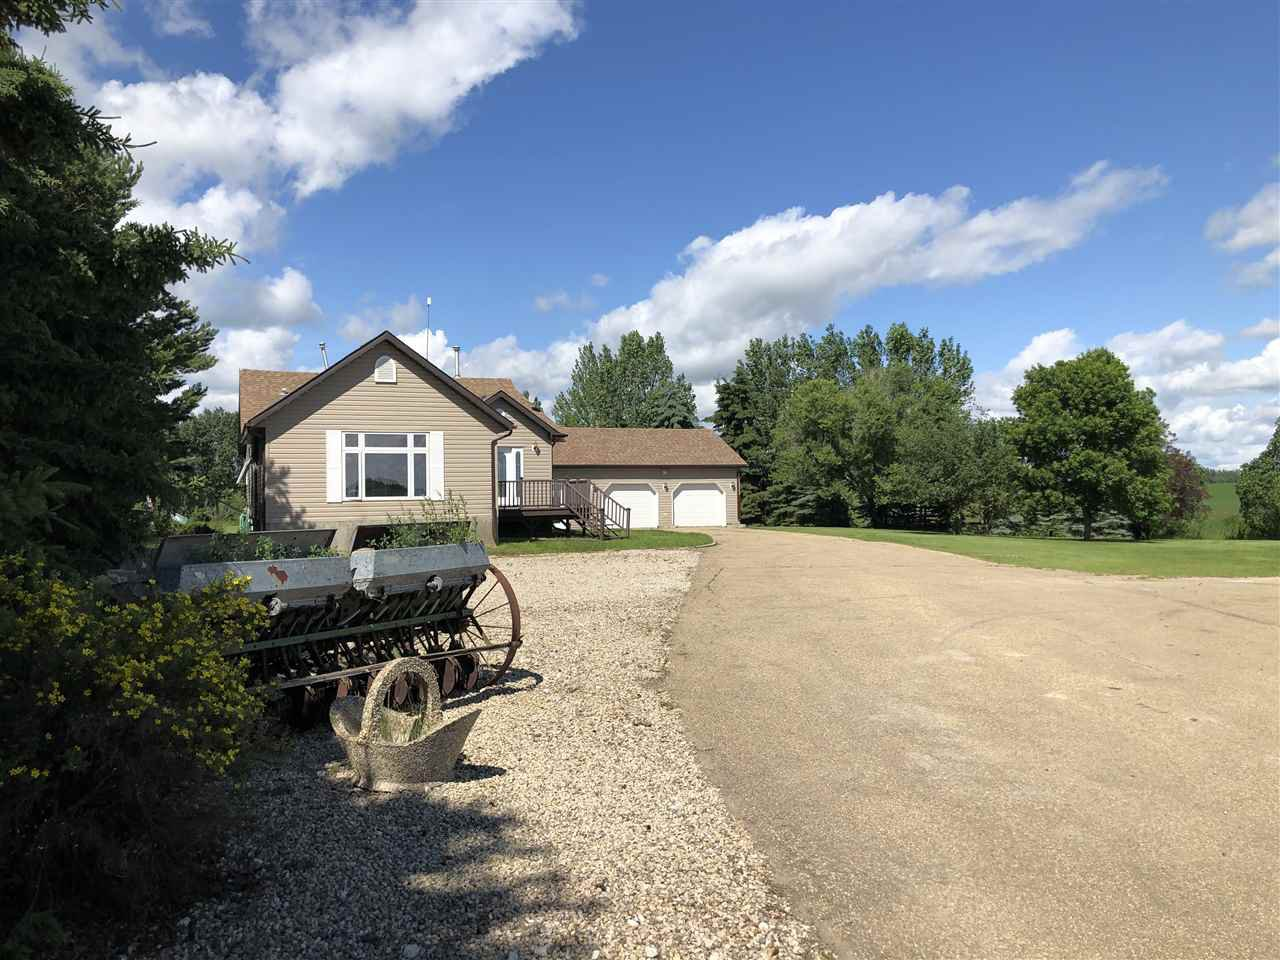 Main Photo: 463042 RGE RD 245: Rural Wetaskiwin County House for sale : MLS®# E4208174